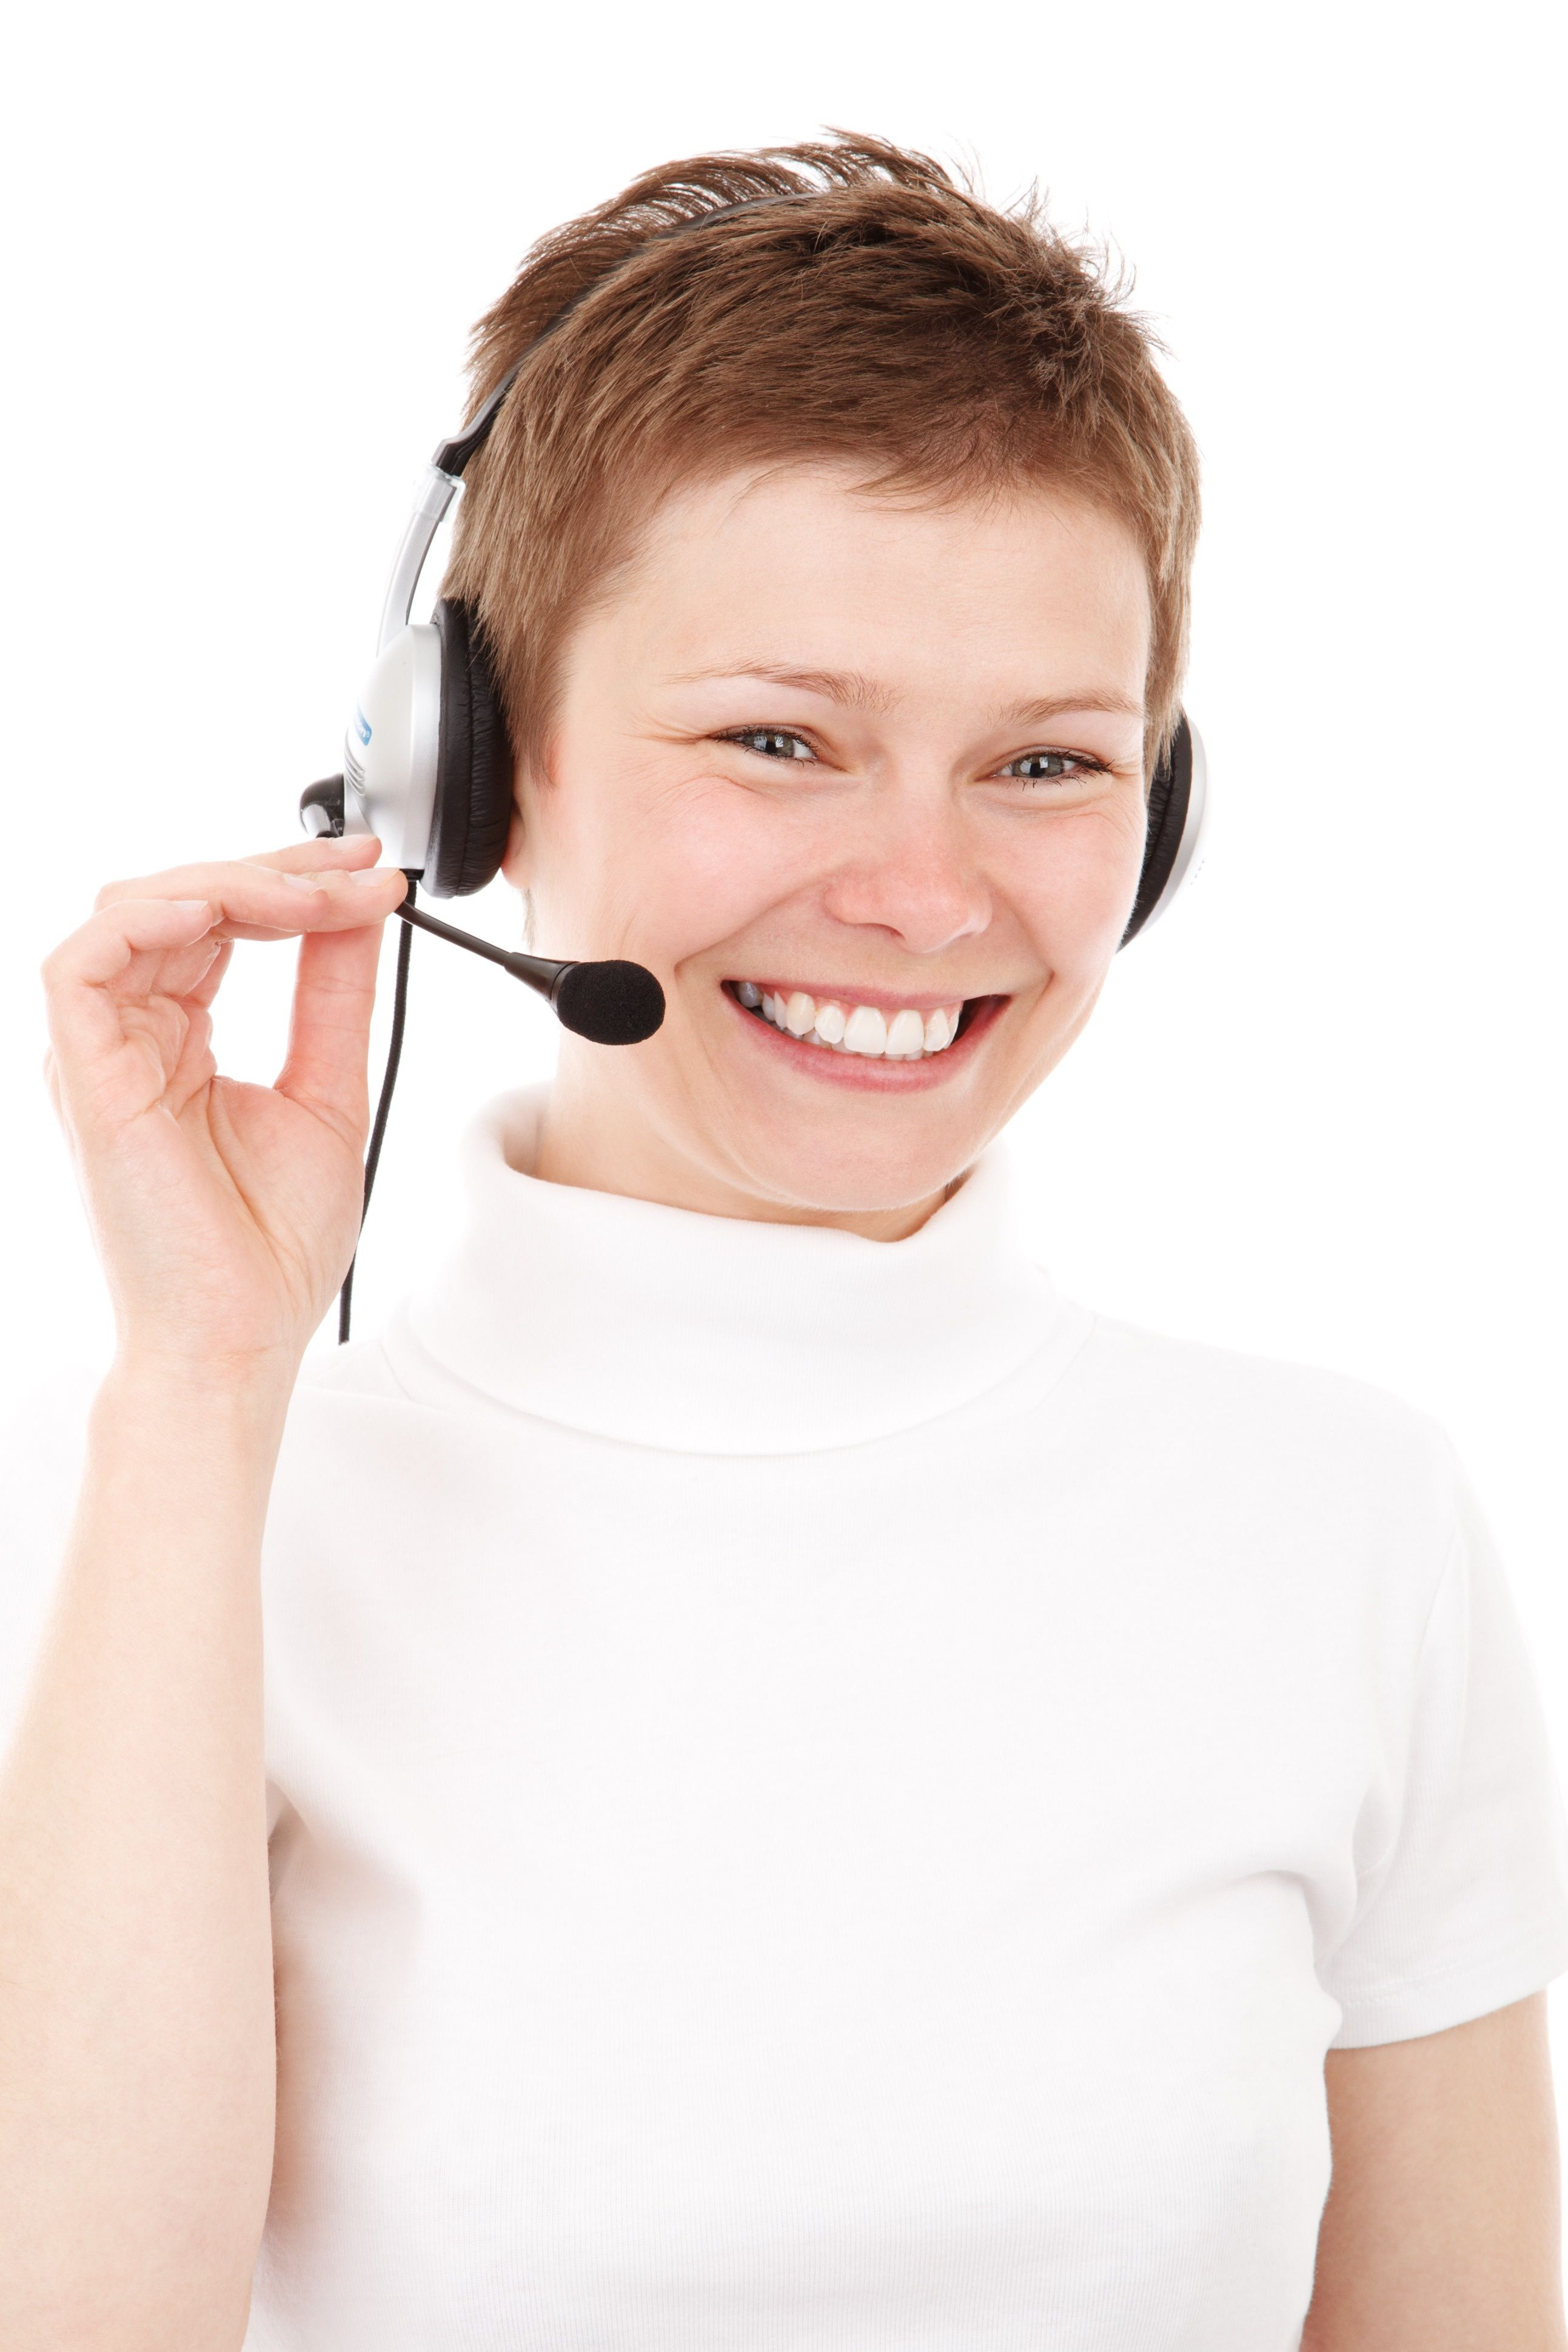 Customer Service Agents available anytime via Phone, email or chat. Please call us with any questions. We have answers!